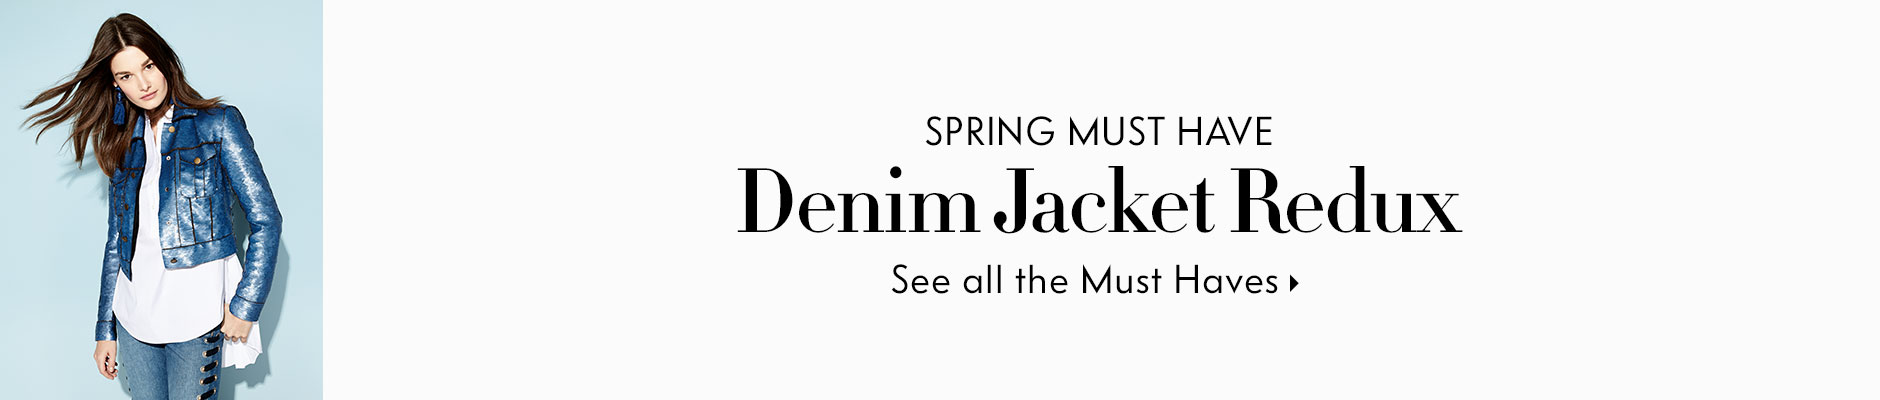 Spring Must Have Denim Jacket Redux - See all the Must Haves